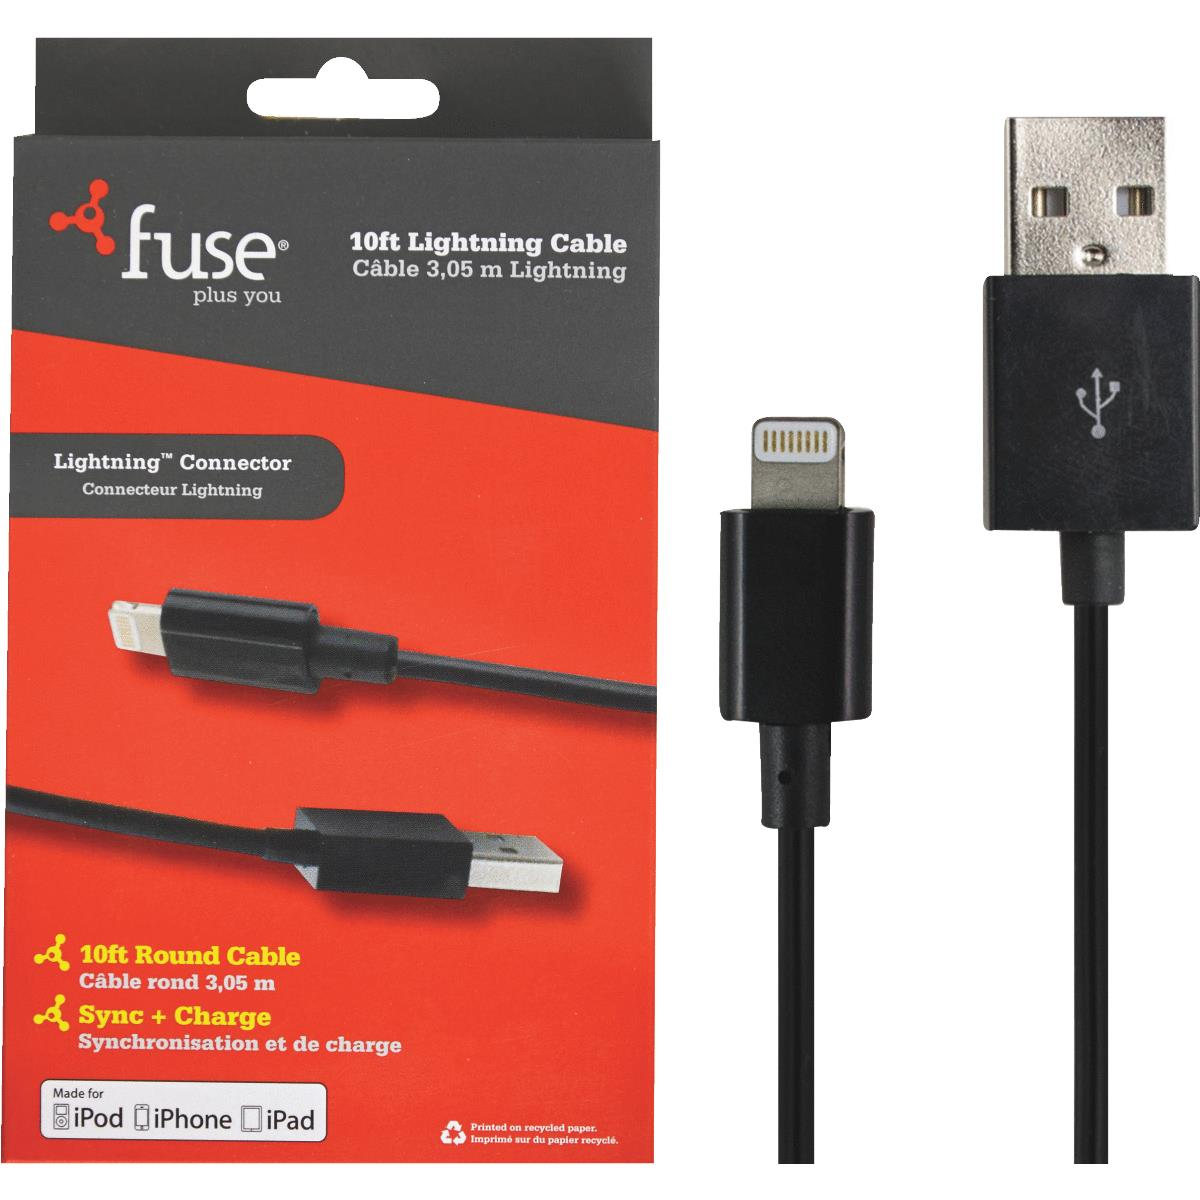 Fuse Lightning USB Charging & Sync Cable